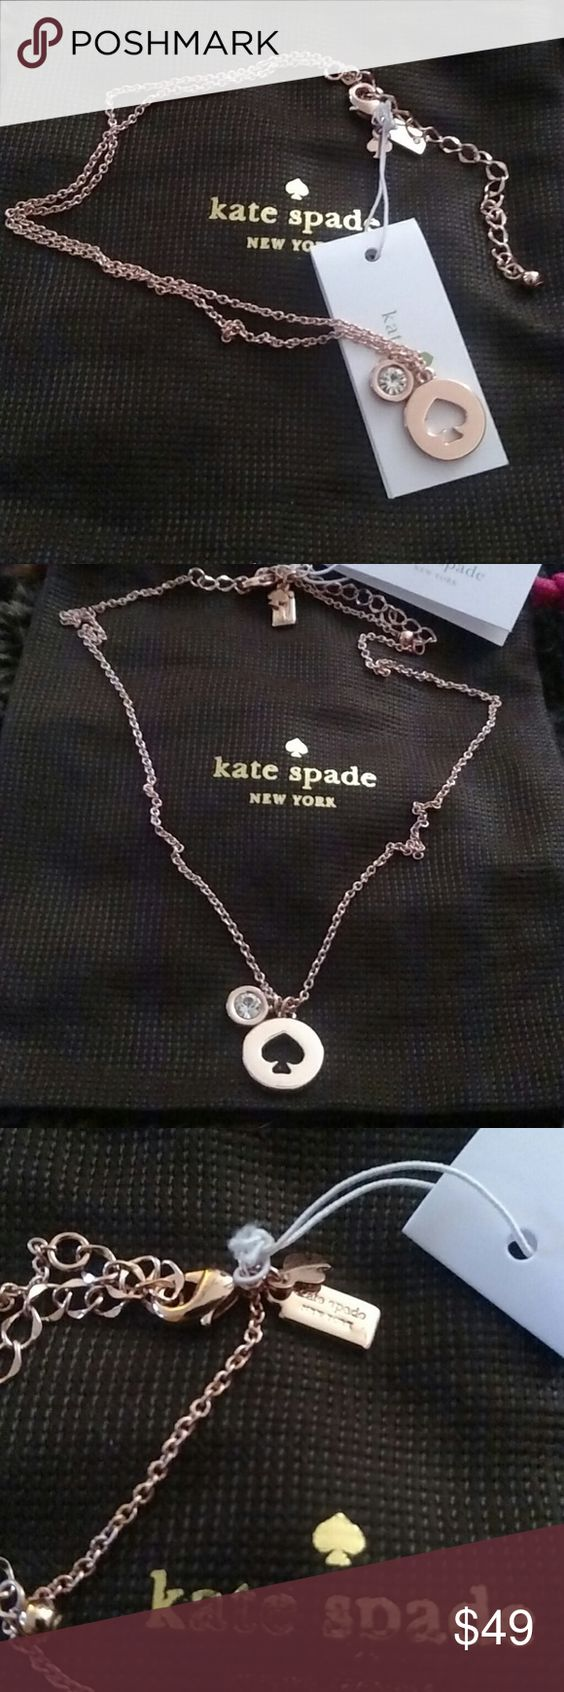 "Kate Spade ""Spot The Spade"" Rose Gold"" Necklace NWT Kate Spade New York ""Spot The Spade"" necklace with a Spade cut out pendant and one crystal pendant. 14k Rose Gold plated. Pendant 0.5""(L) X 0.5""(H) X 0.1""(D). Necklace 16.5""(L)  X 0.1""(W) is adjustable. Kate Spade pouch is included. Fast shipping! Kate Spade Jewelry Necklaces"